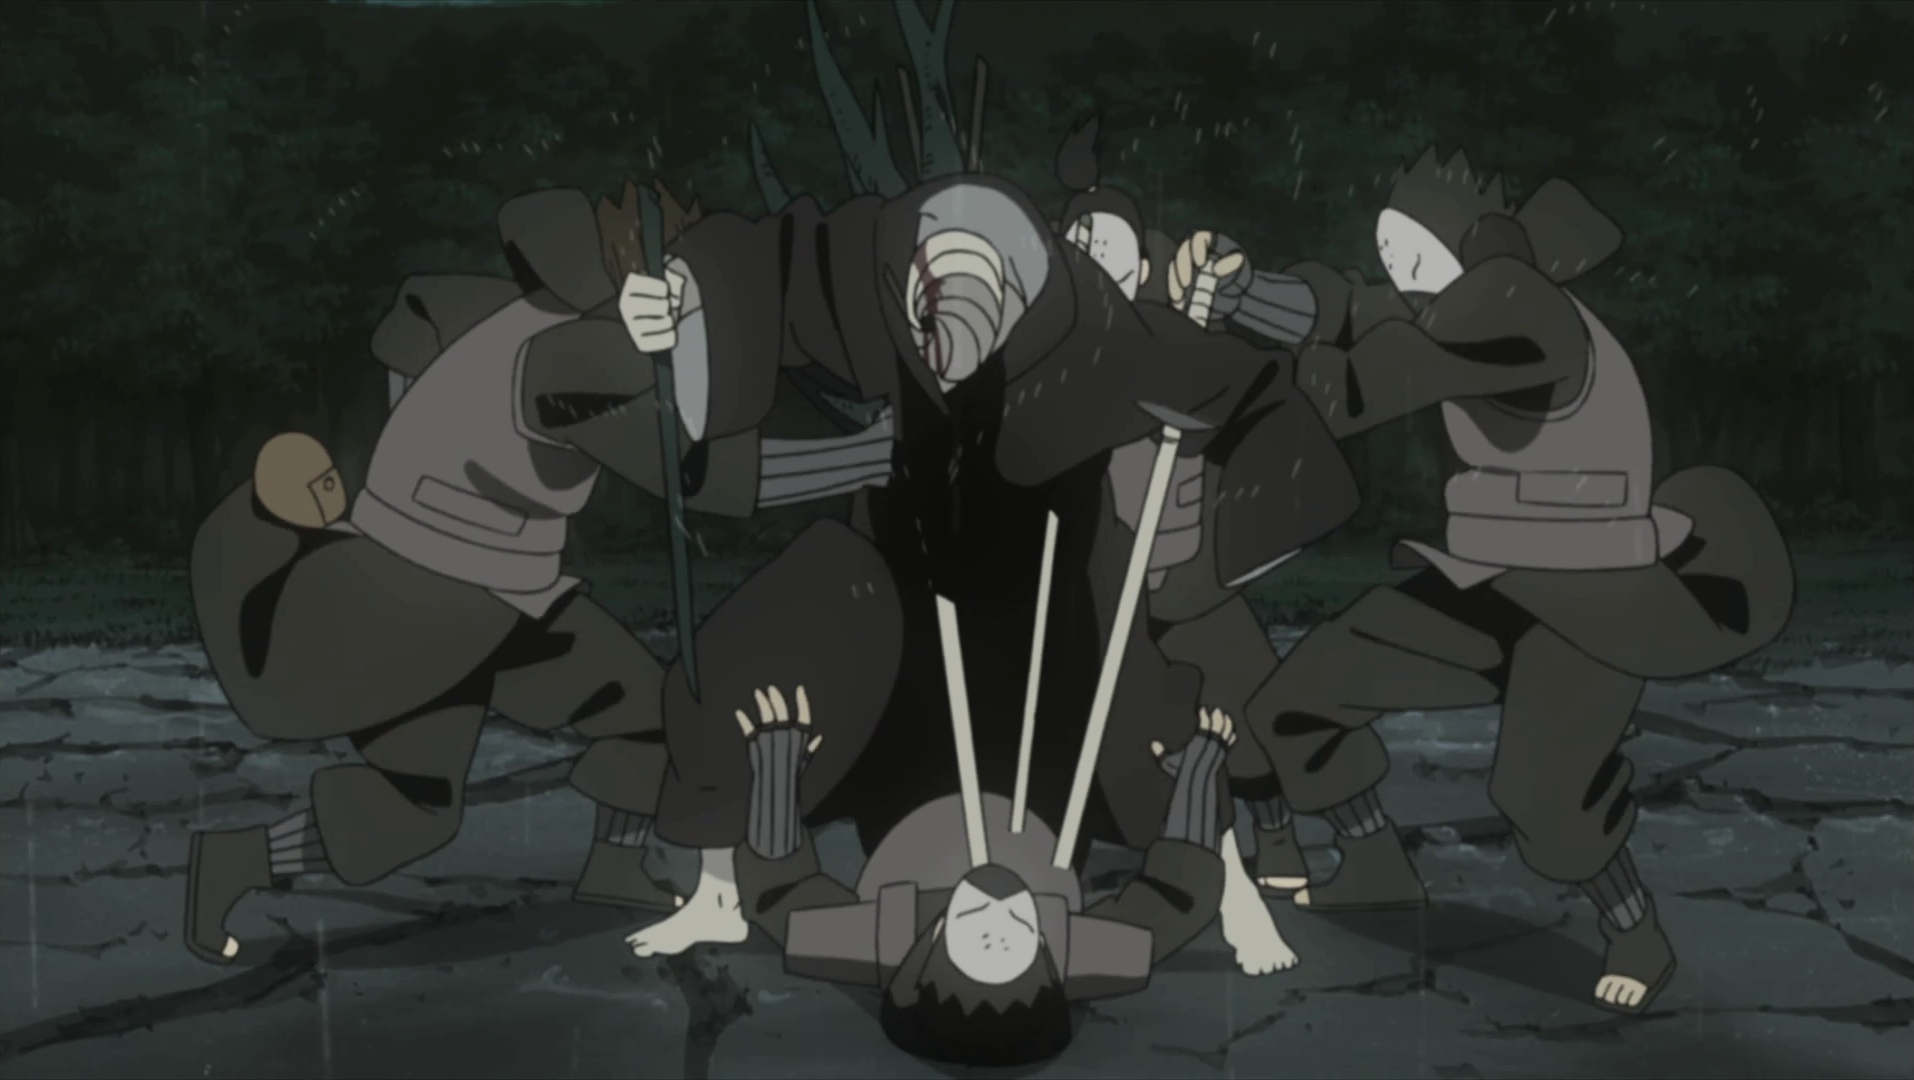 Who are the most deadly assassins in the Naruto universe